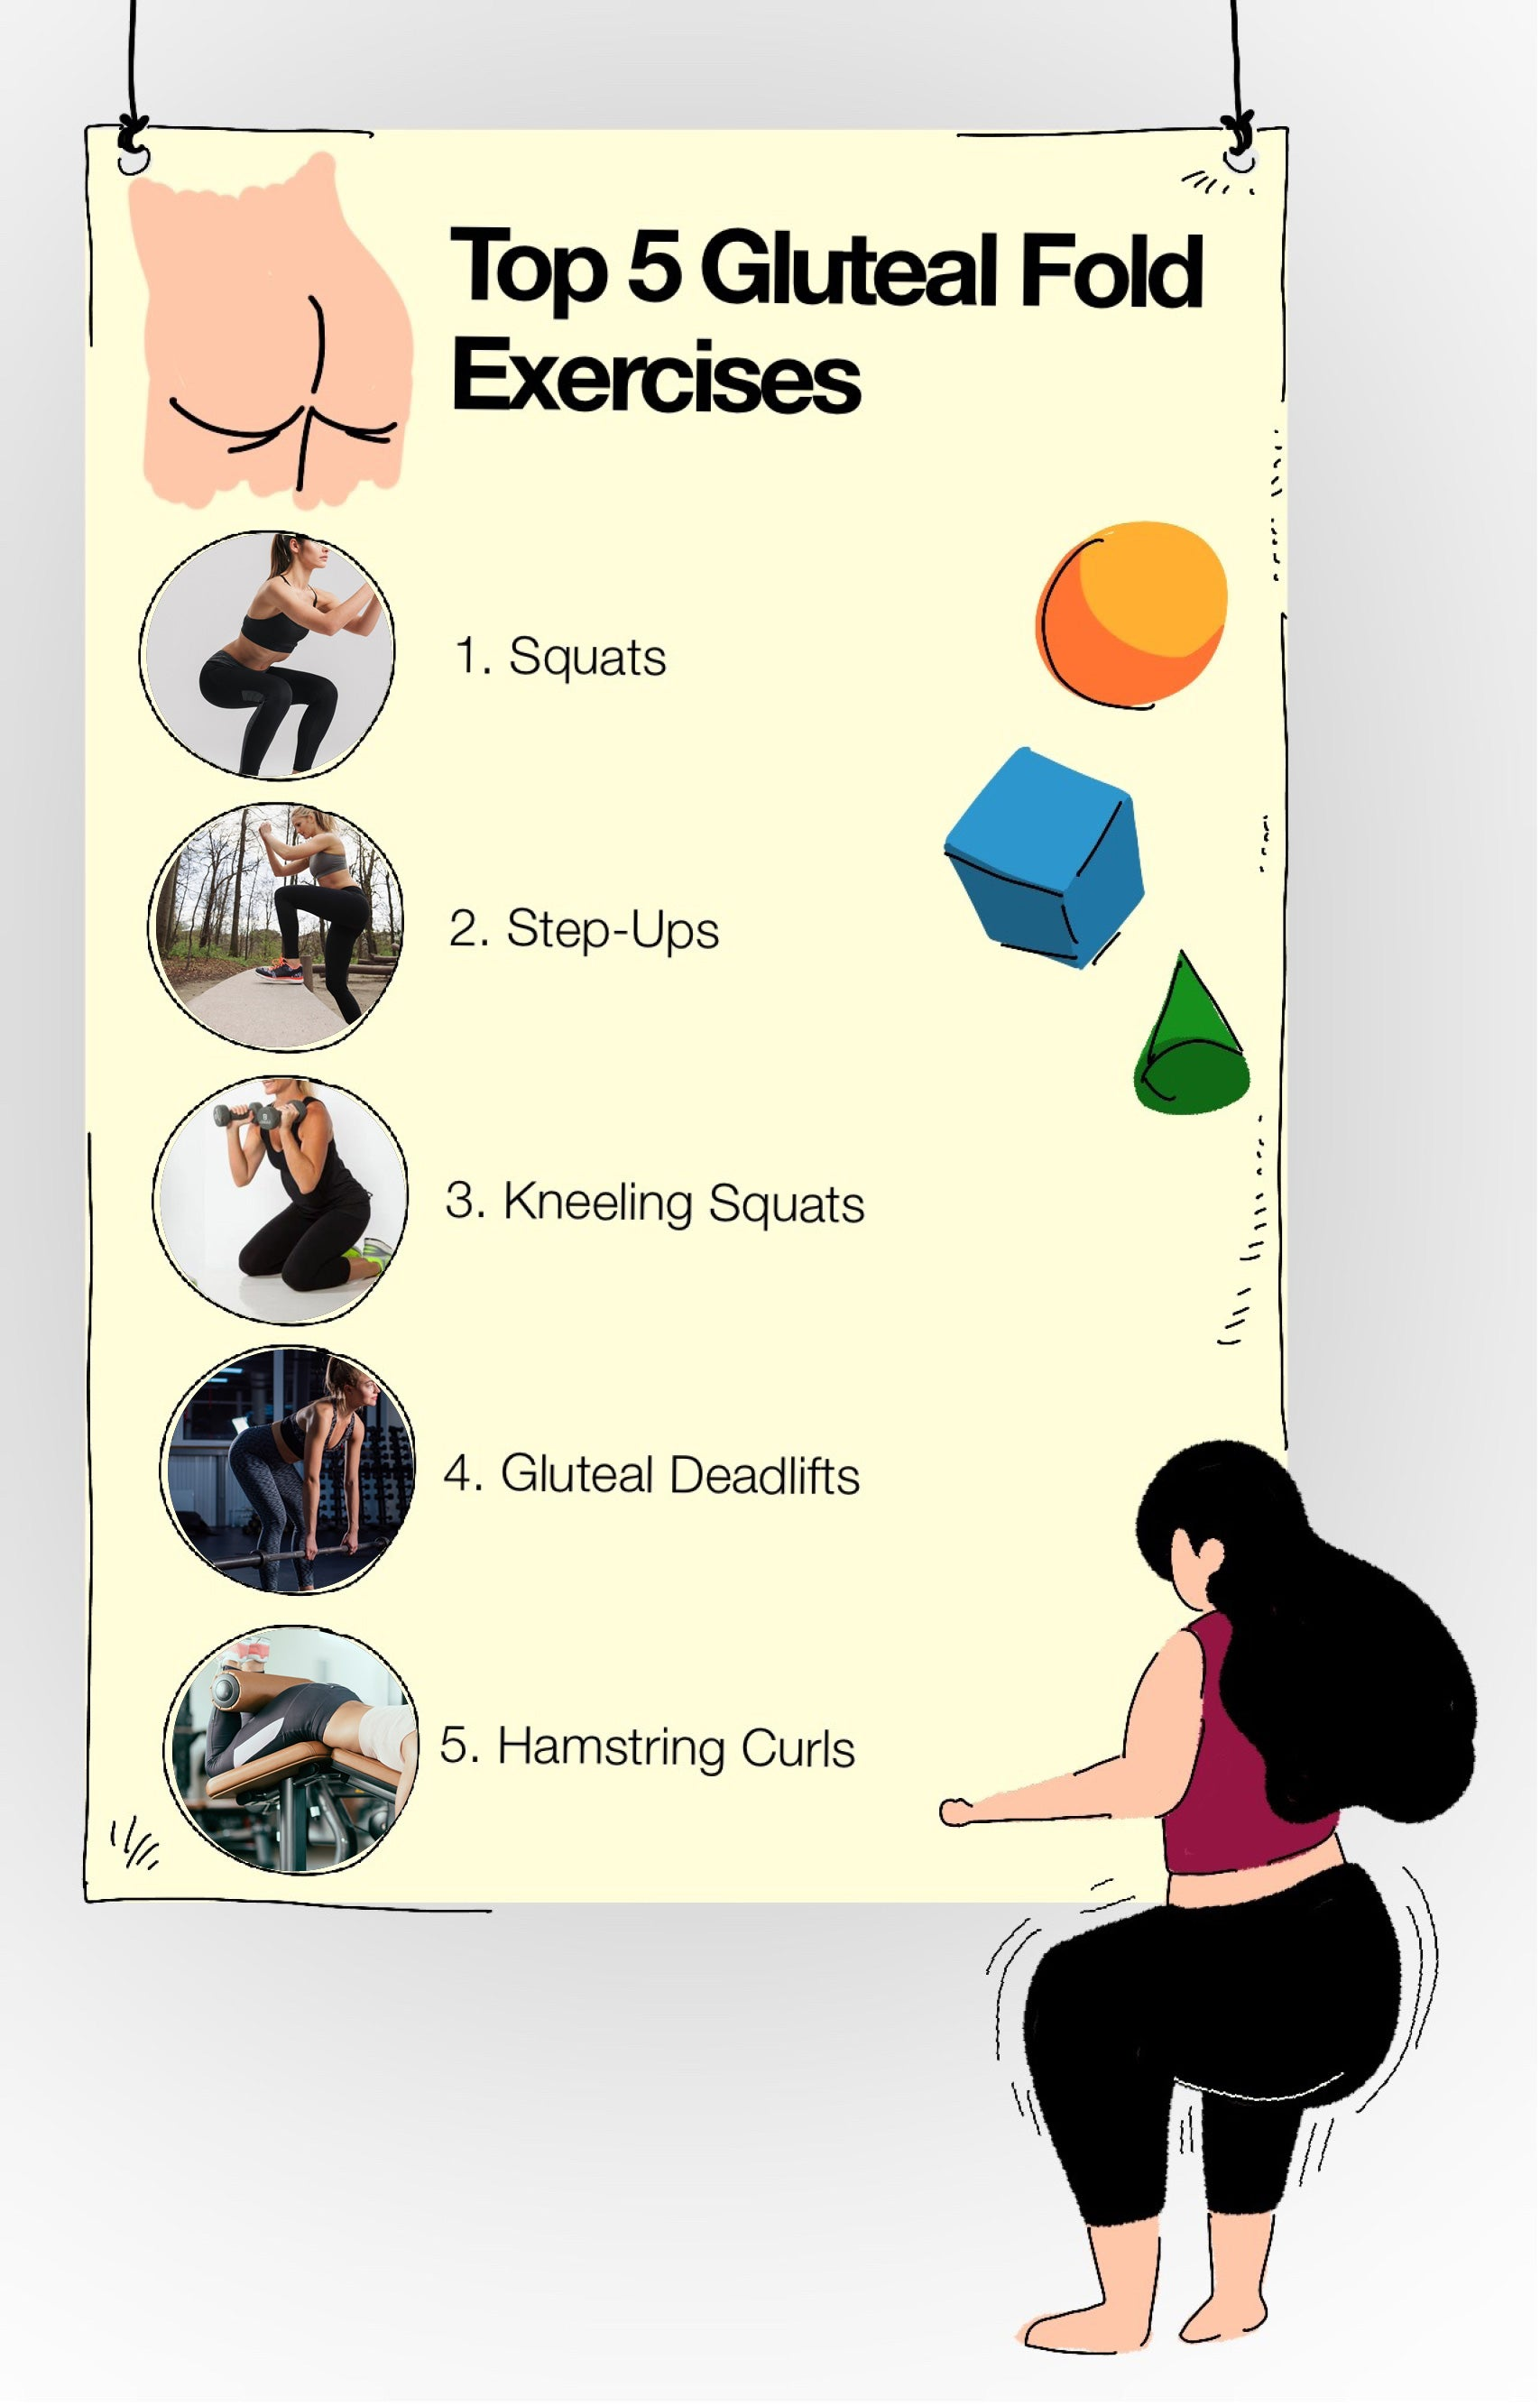 Top 5 Gluteal Fold Exercises